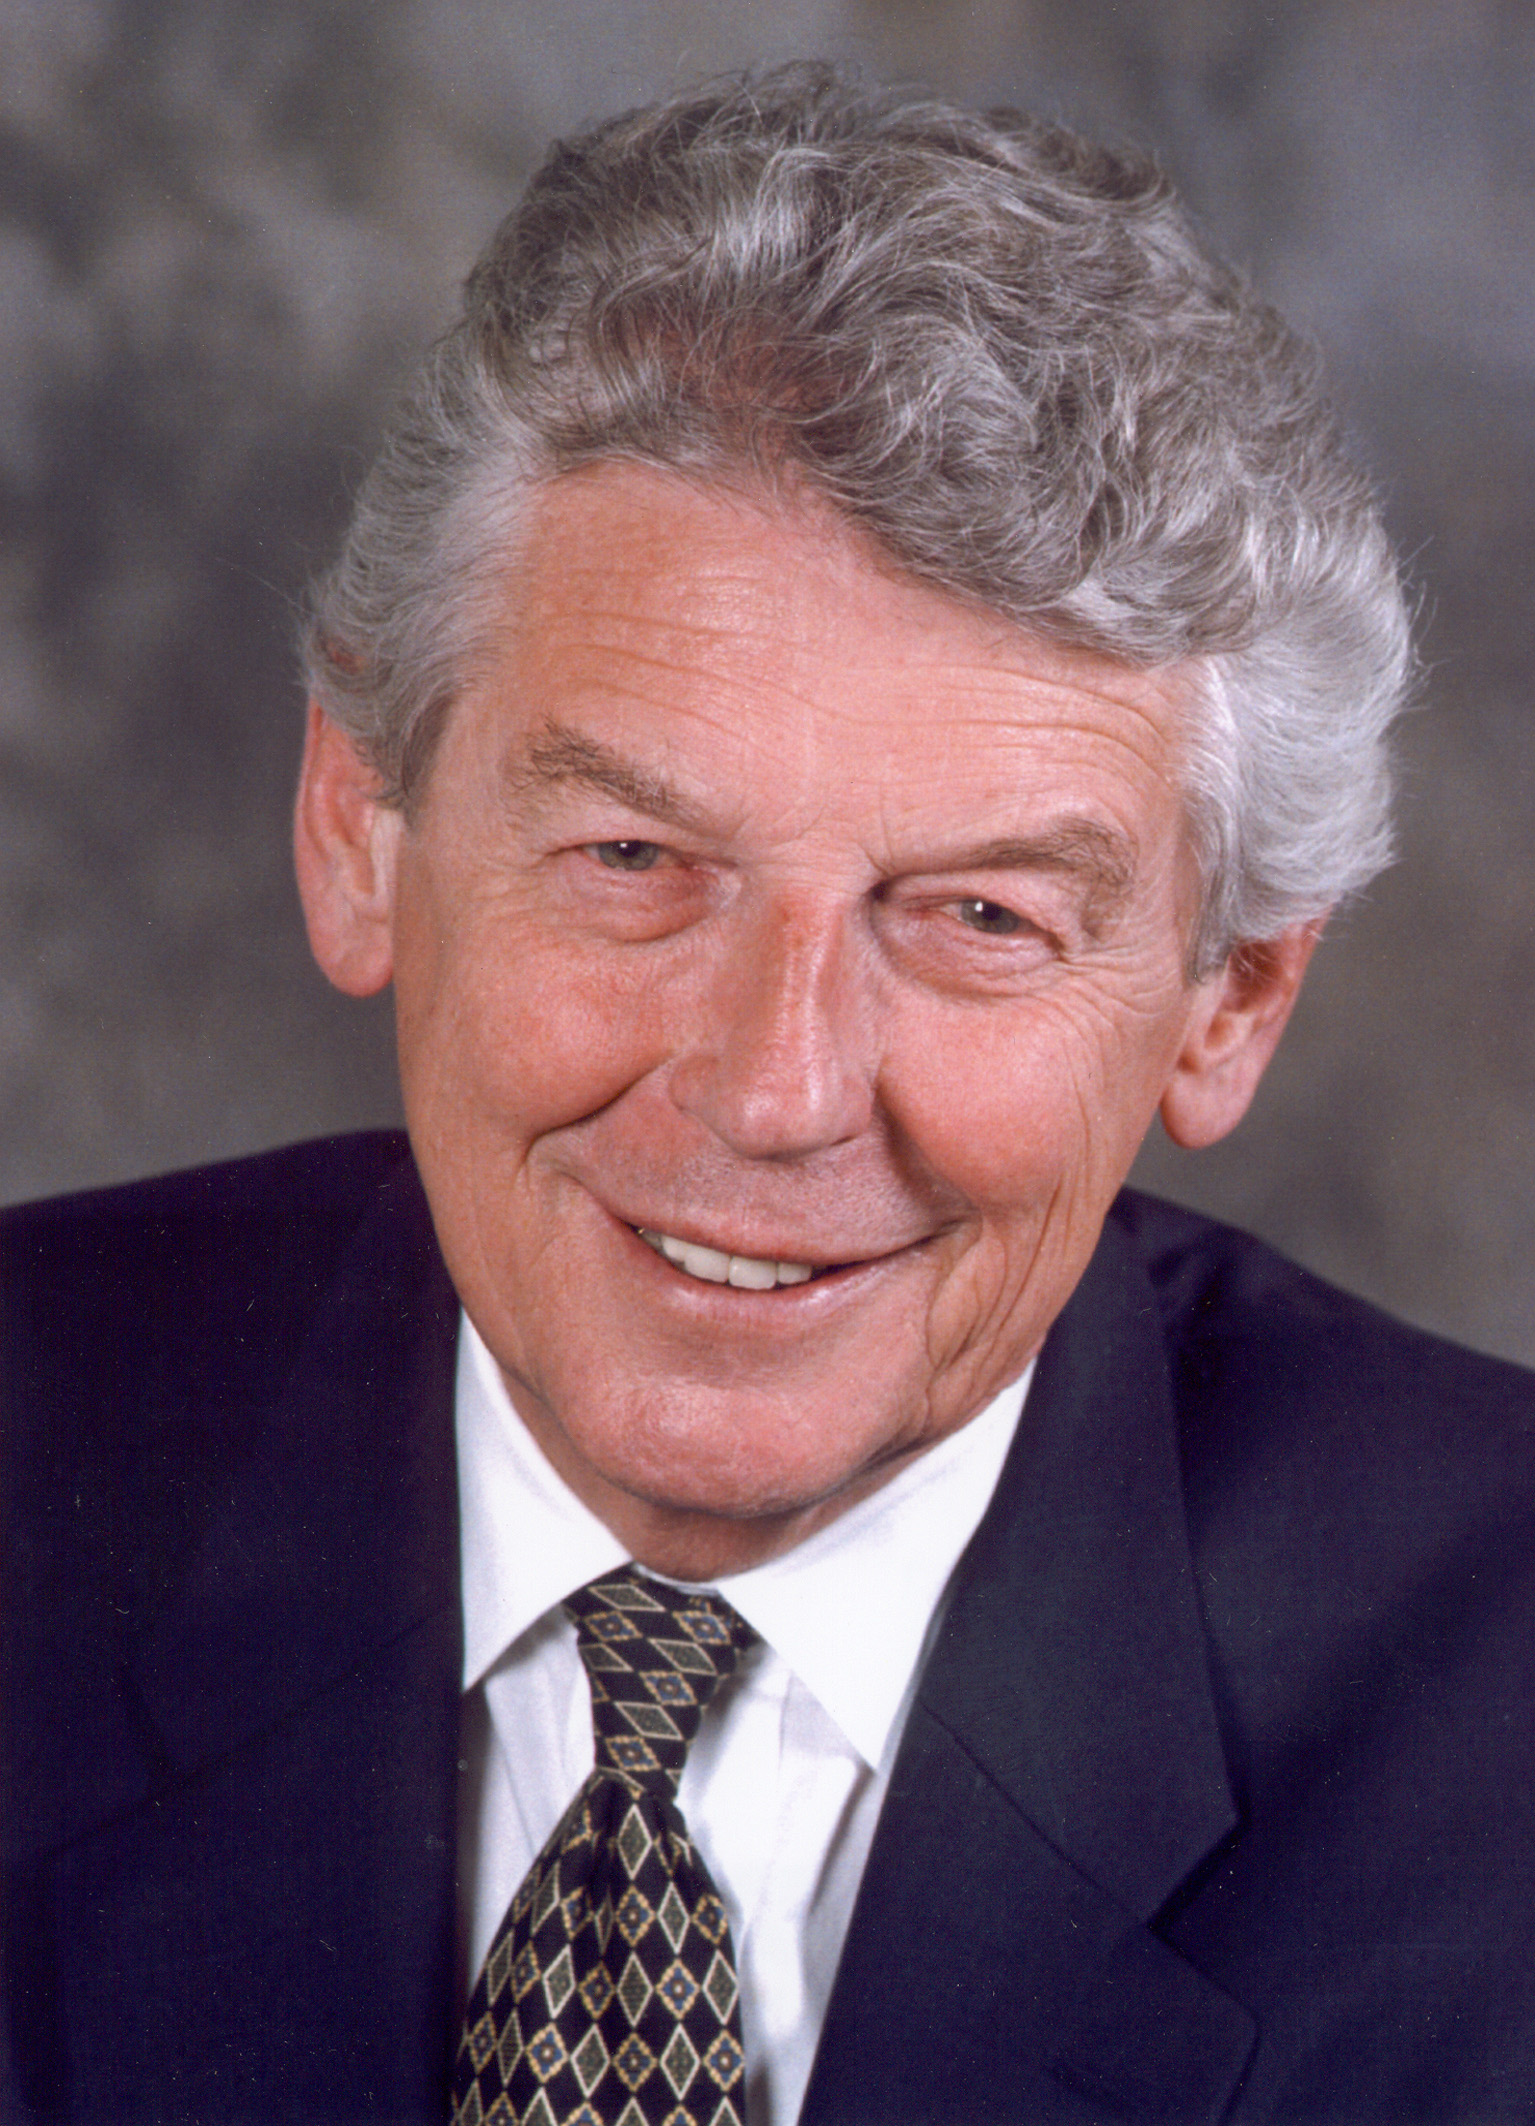 Kok Halland : Quotes by Wim Kok @ Like Success